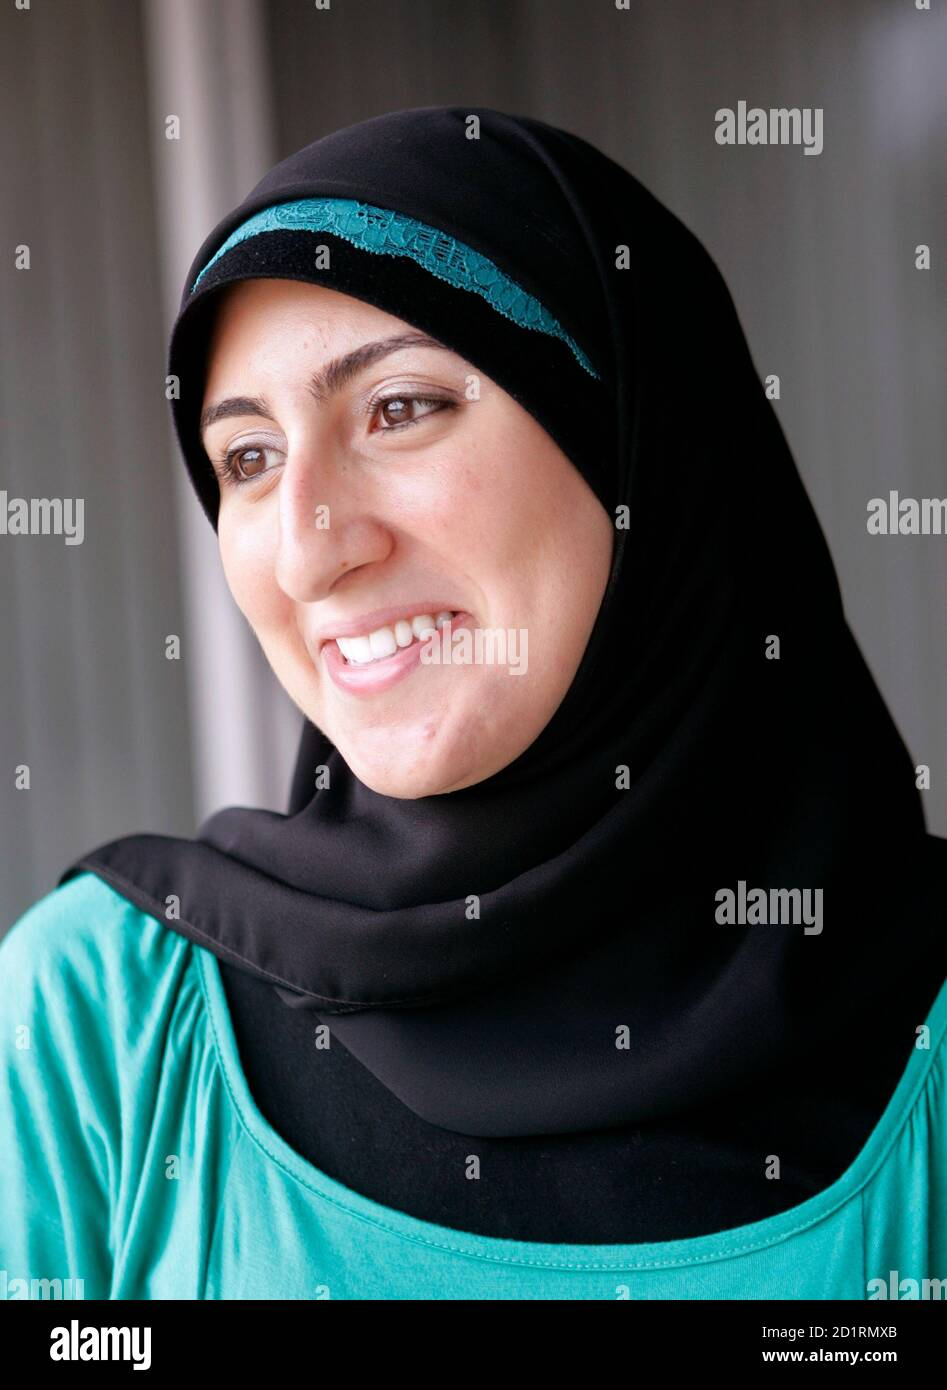 With a hijab on her head. Zahra Huber 23 Wears Her Muslim Hijab While Working At A Radio Station In Southfield Michigan August 20 2007 Huber Does Editing And Research At The Station And Says That She Aspires